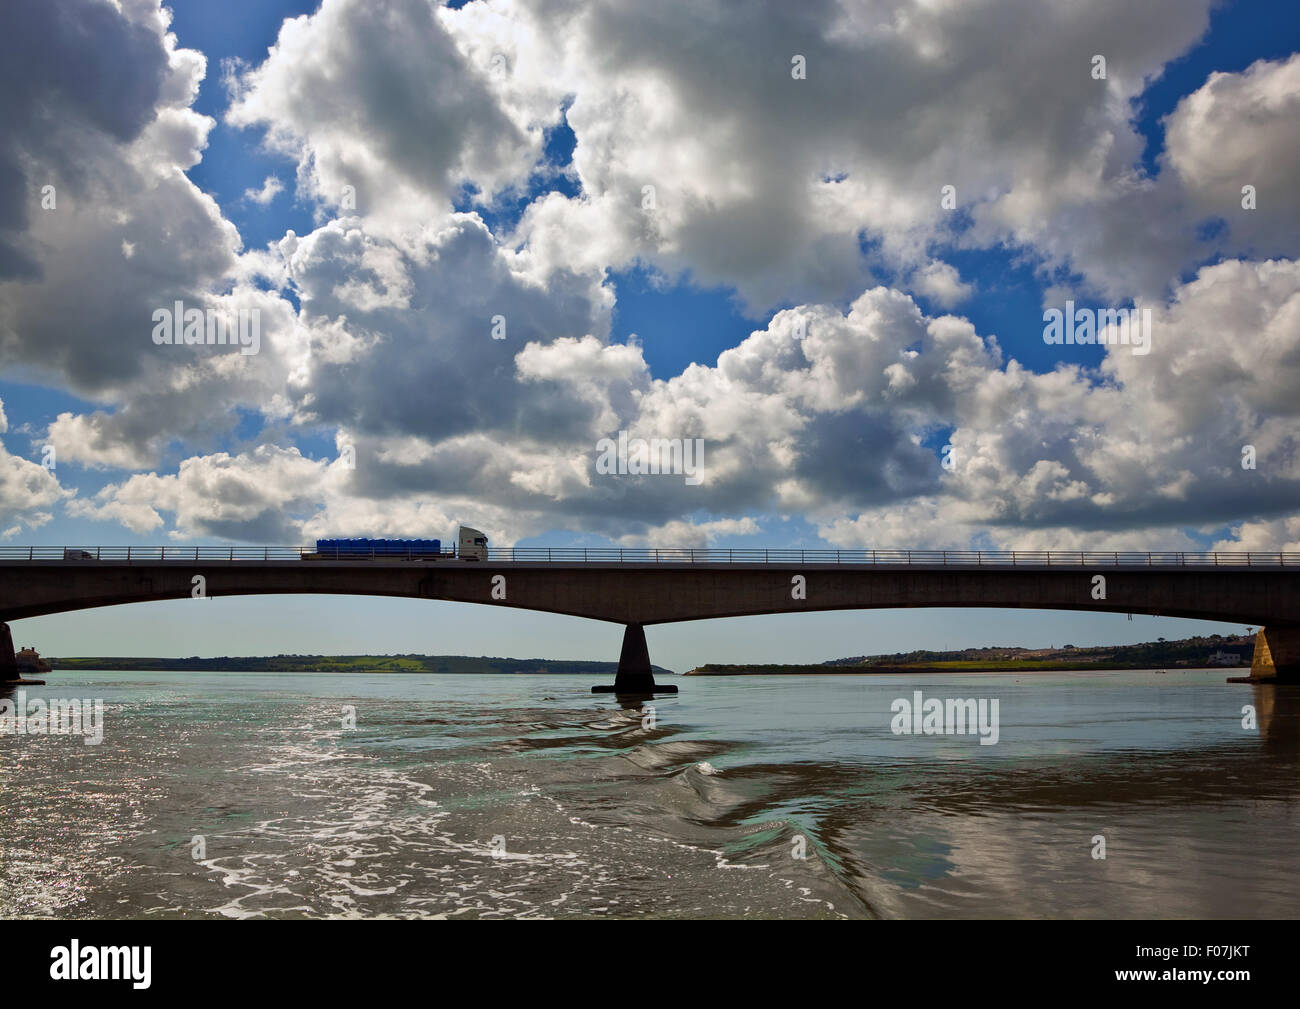 Road Bridge Over the Blackwater River, Carrying main Cork - Waterford Traffic, Near Youghal, County Cork, Ireland - Stock Image